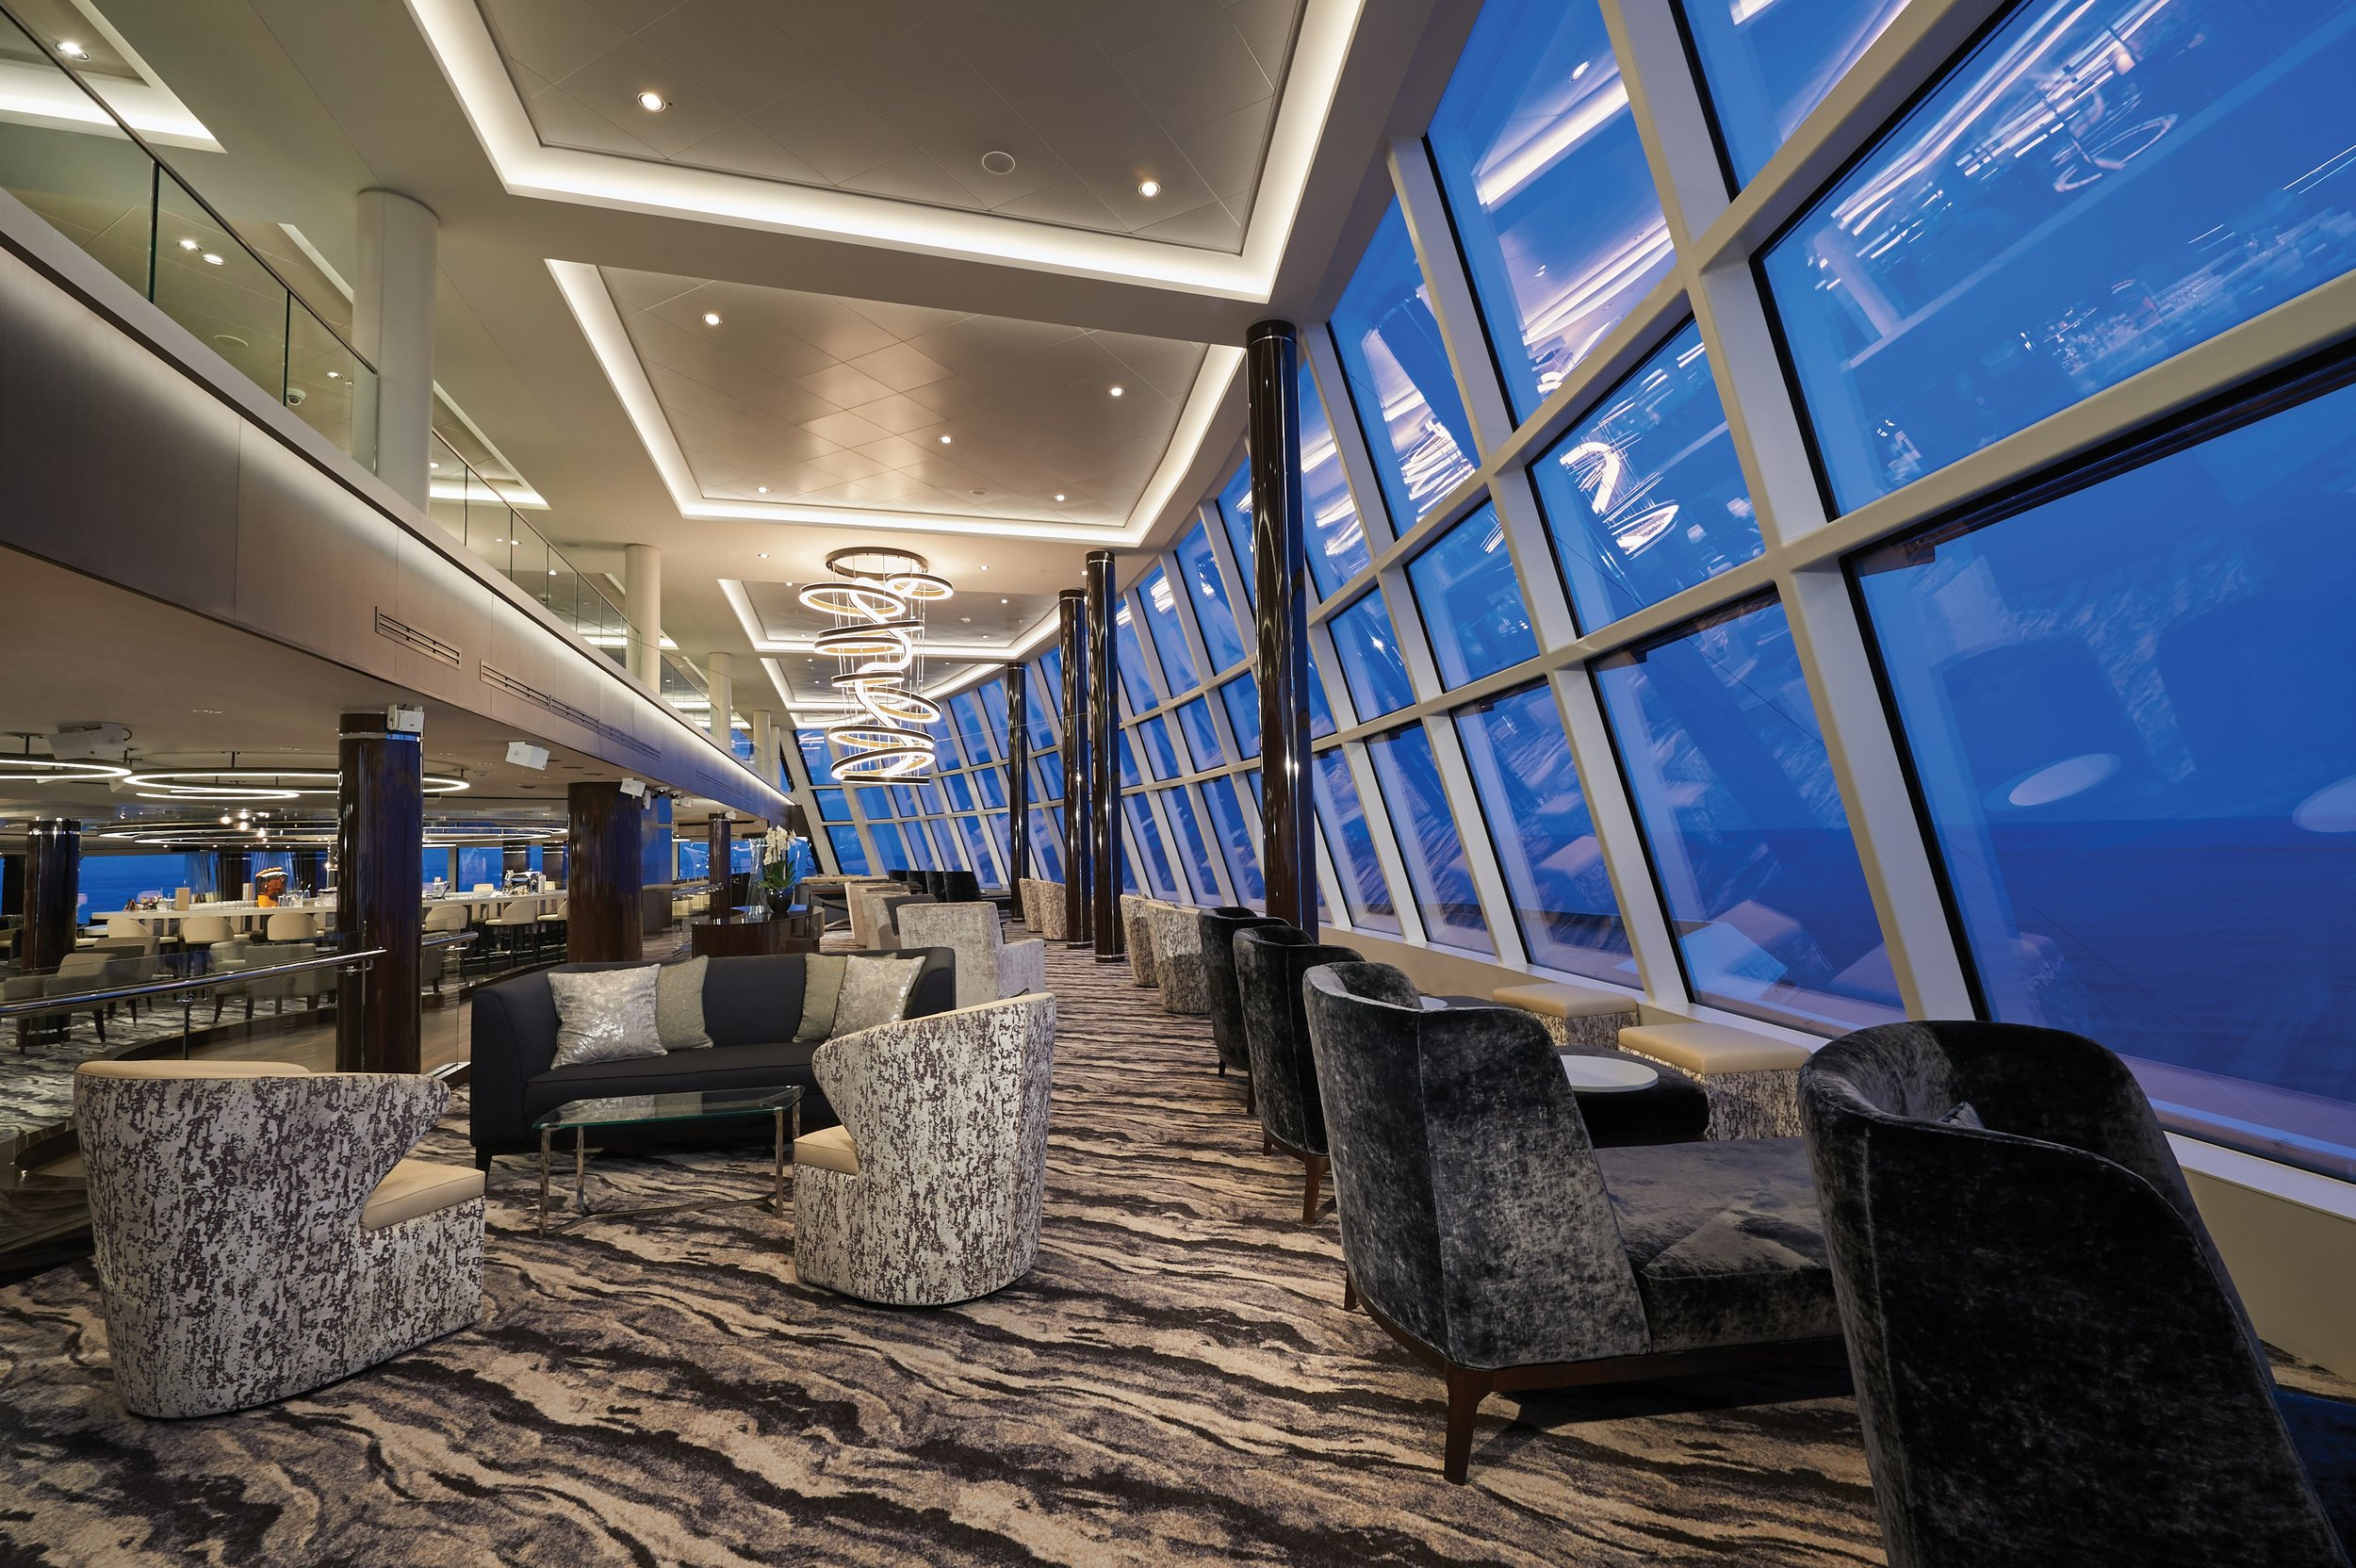 ncl_Bliss_Observation Lounge 2.jpeg